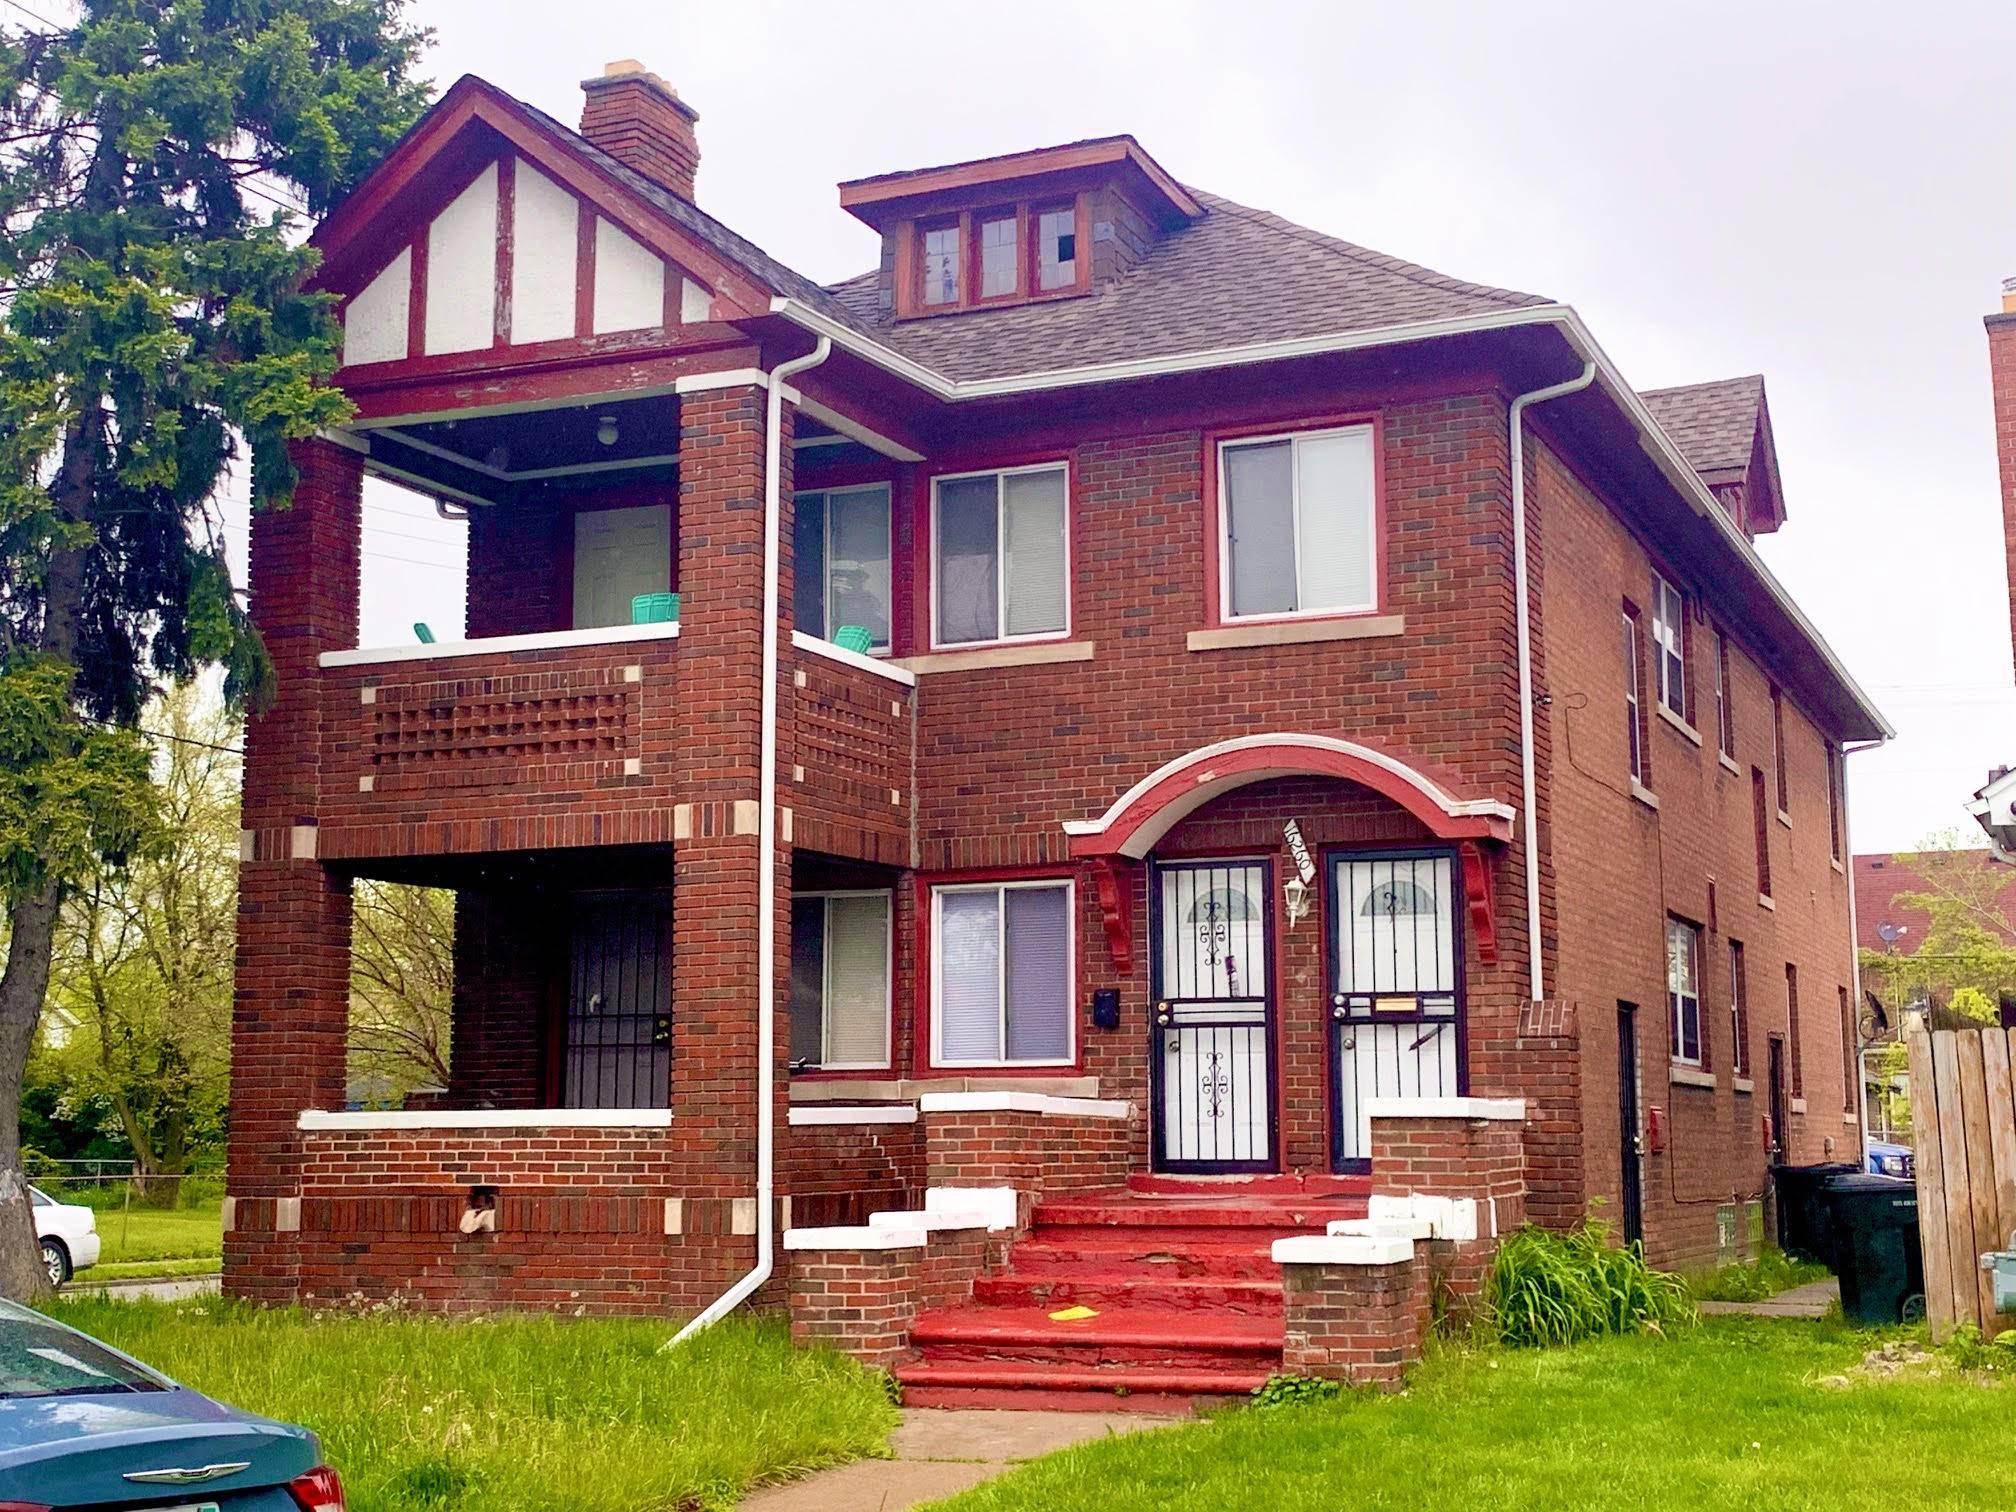 Buying homes in detroit for investment investment capital real estate scam